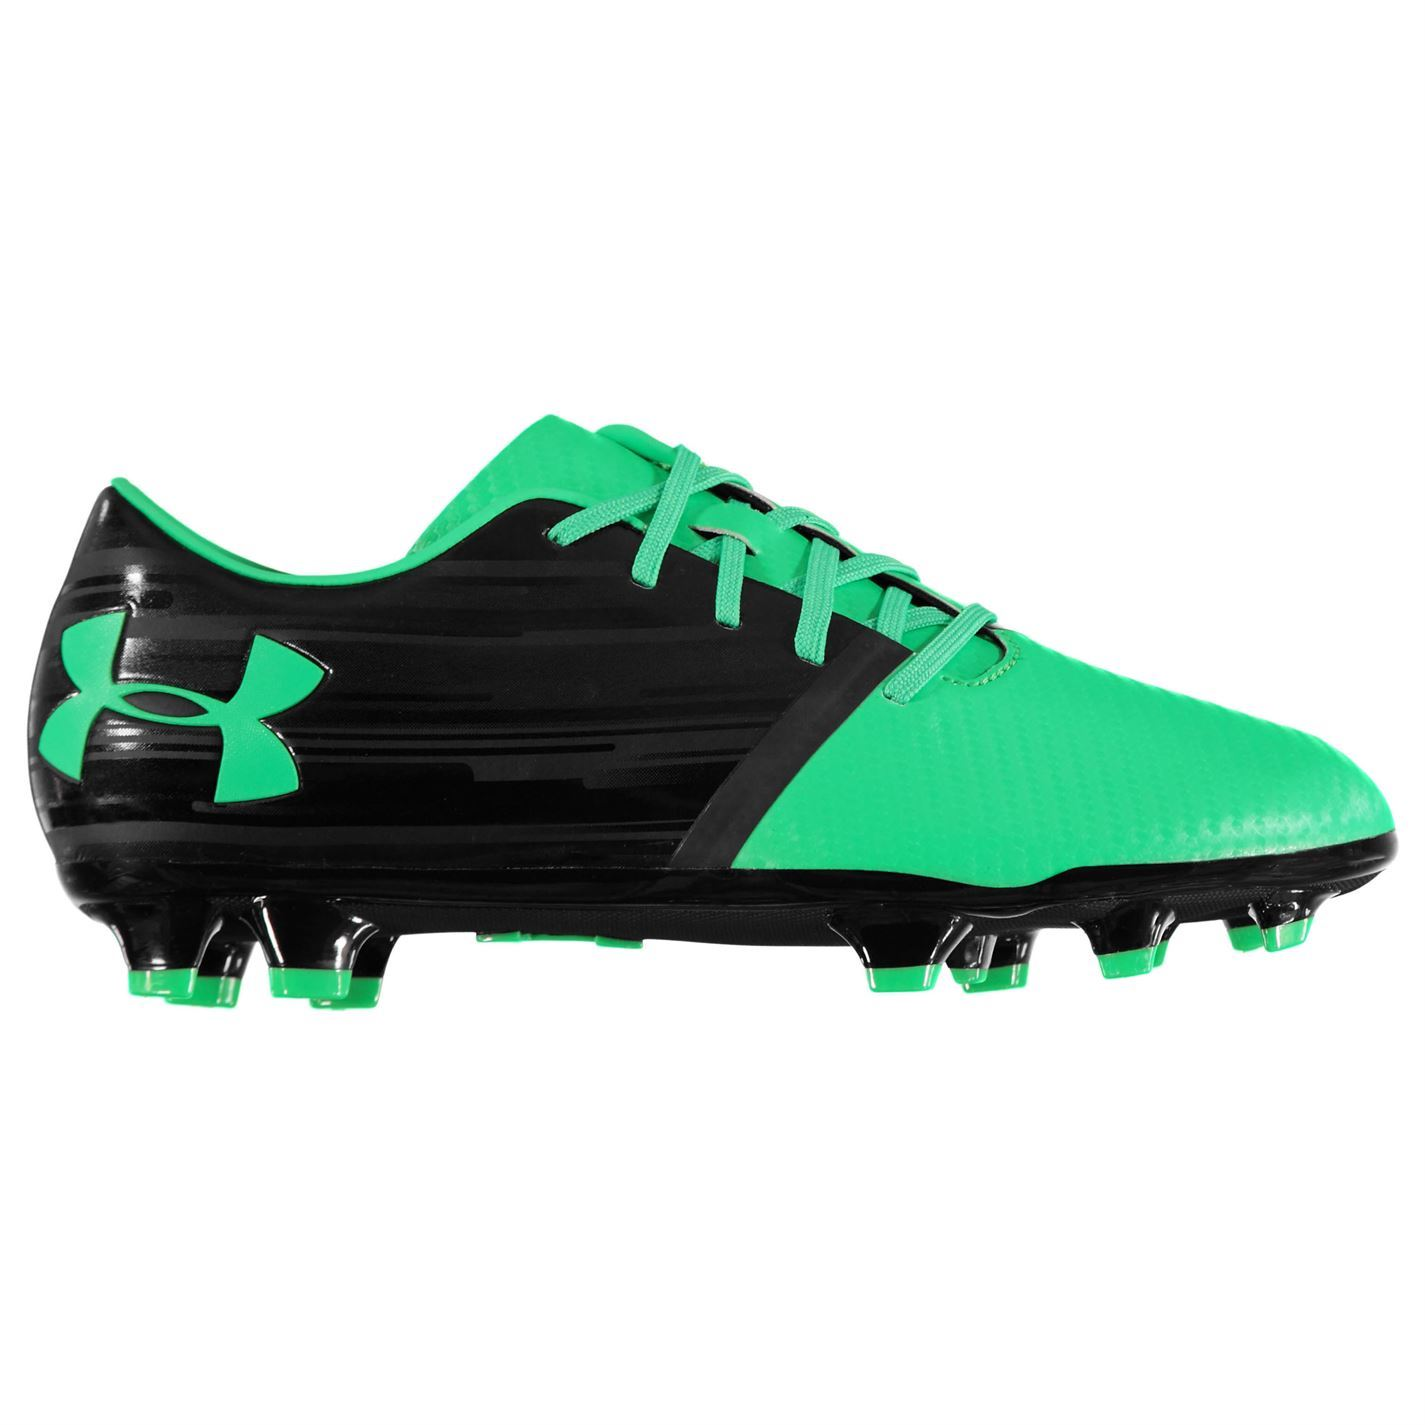 78ac464c0307 ... Under Armour Spotlight BL FG Firm Ground Football Boots Mens Black  Soccer Cleats ...